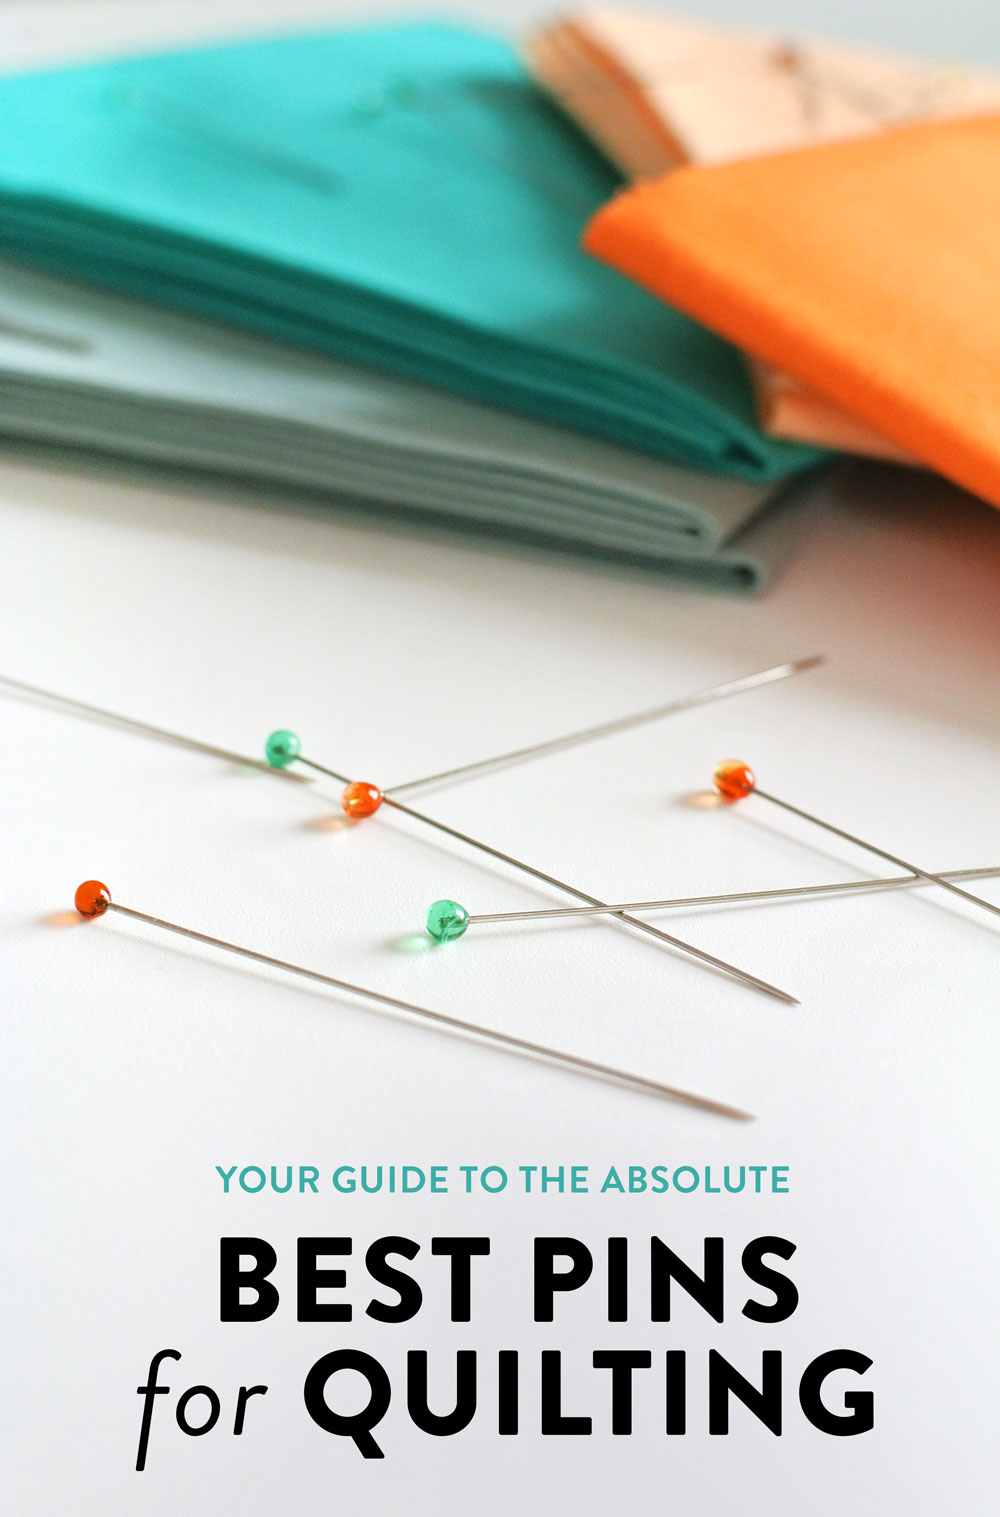 Guide-to-best-pins-for-quilting